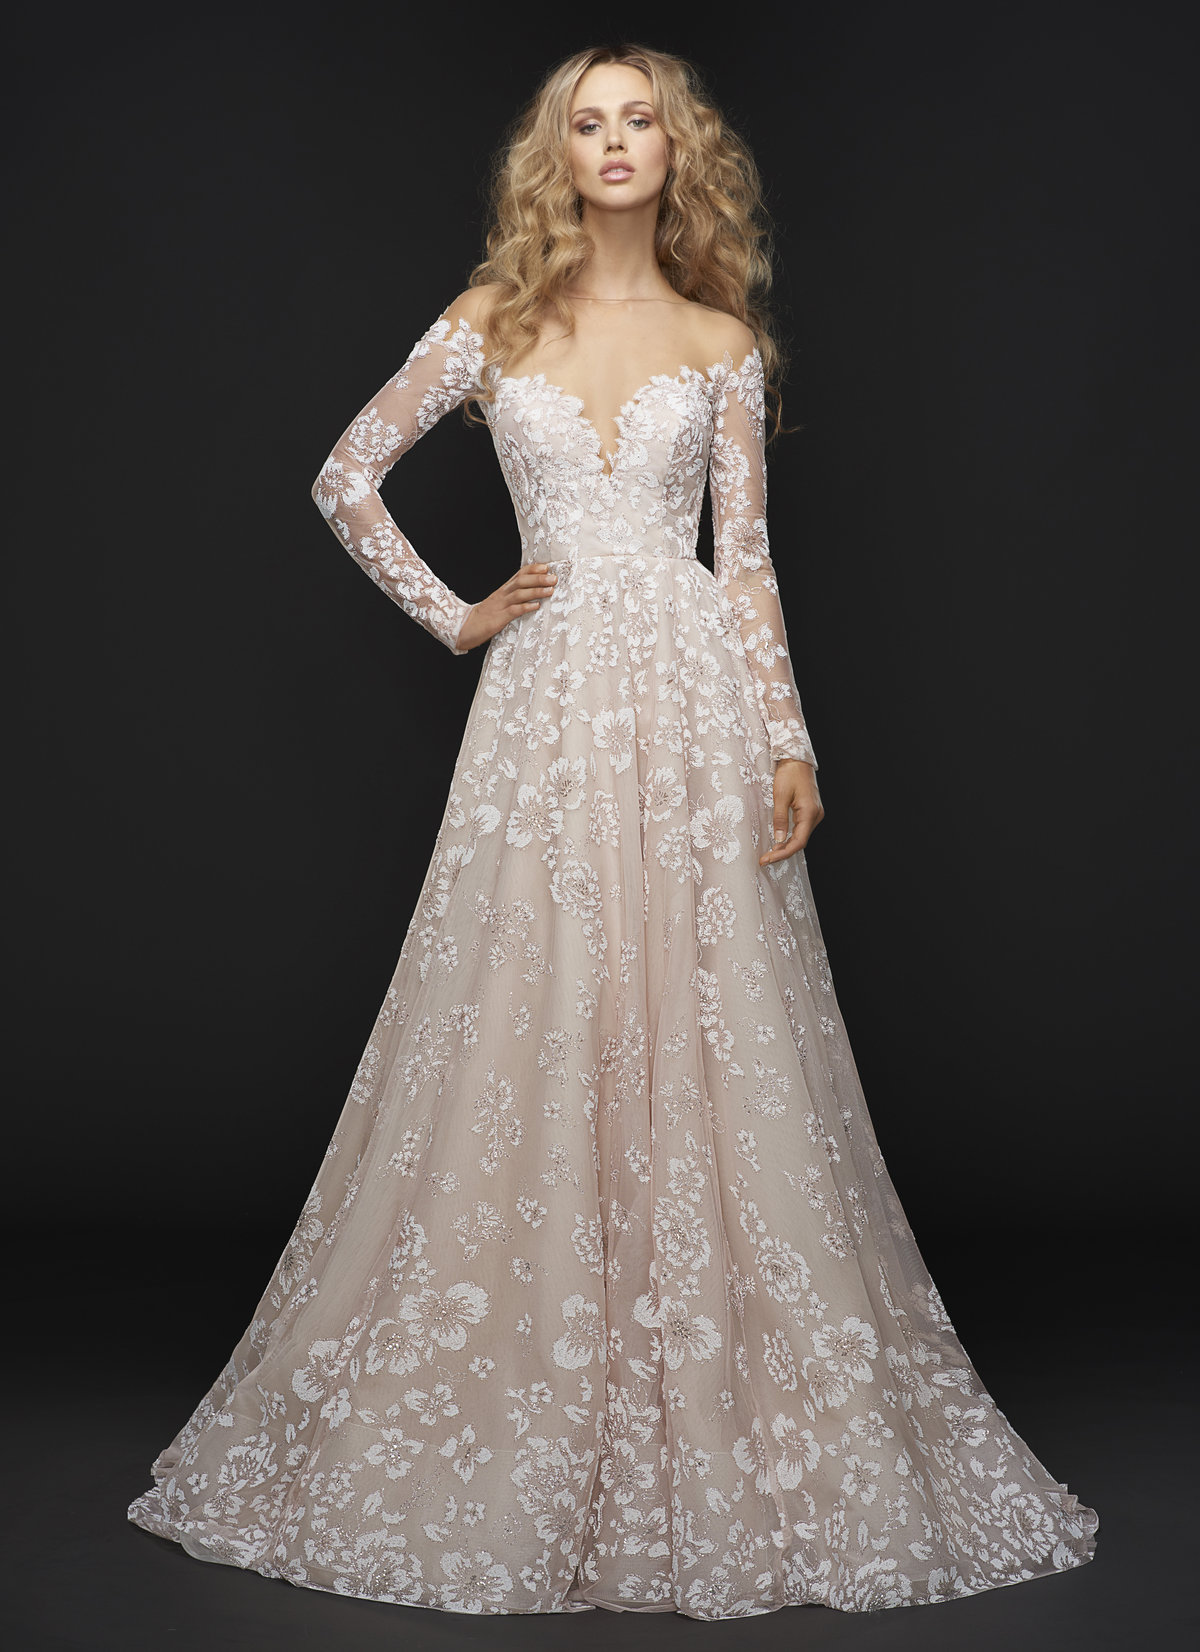 Bridal gowns and wedding dresses by jlm couture style for Wedding dresses to buy off the rack